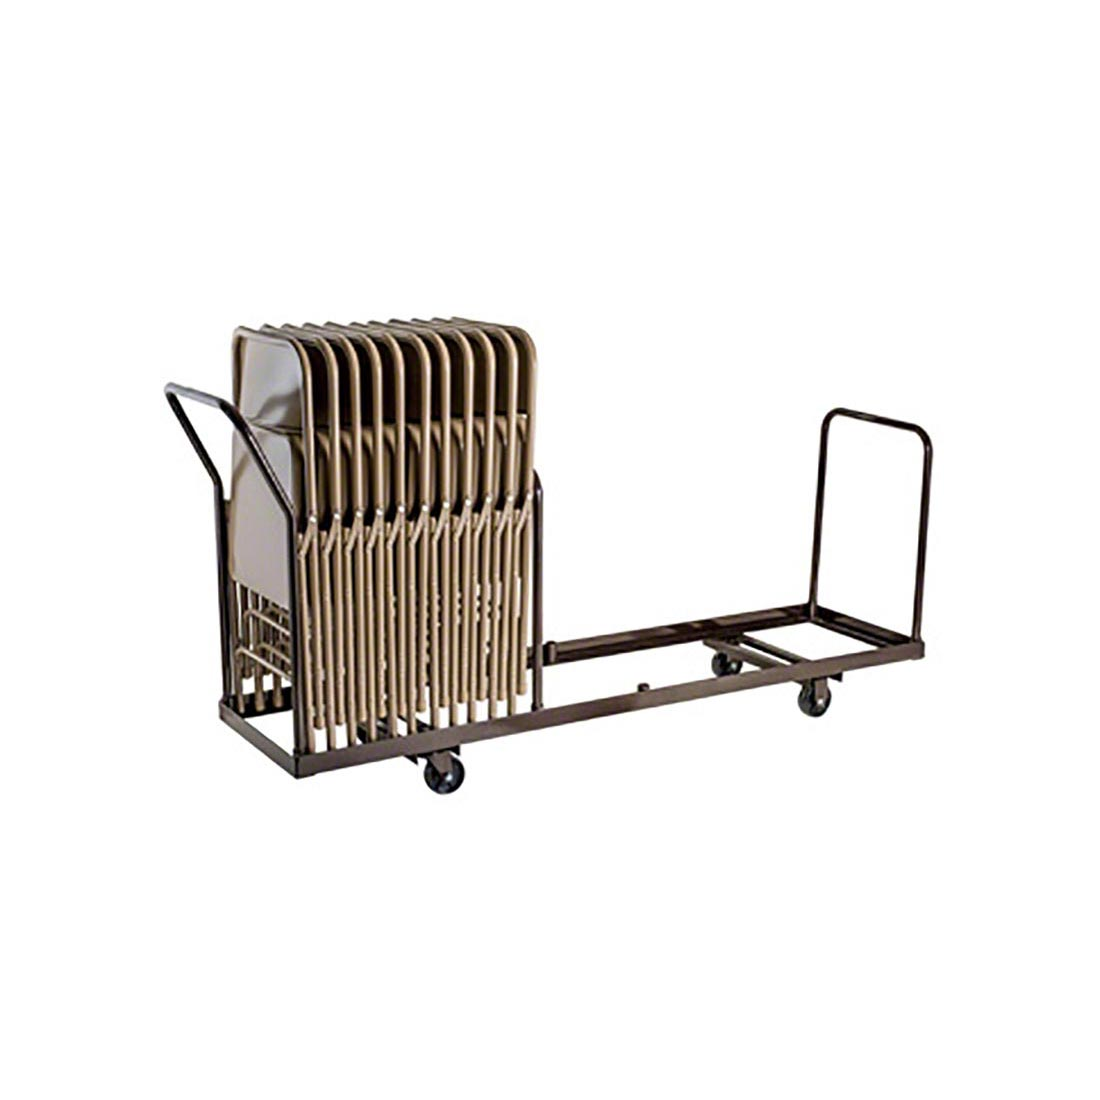 National Public Seating Dy 35 Folding Chair Dolly For Vertical Storage